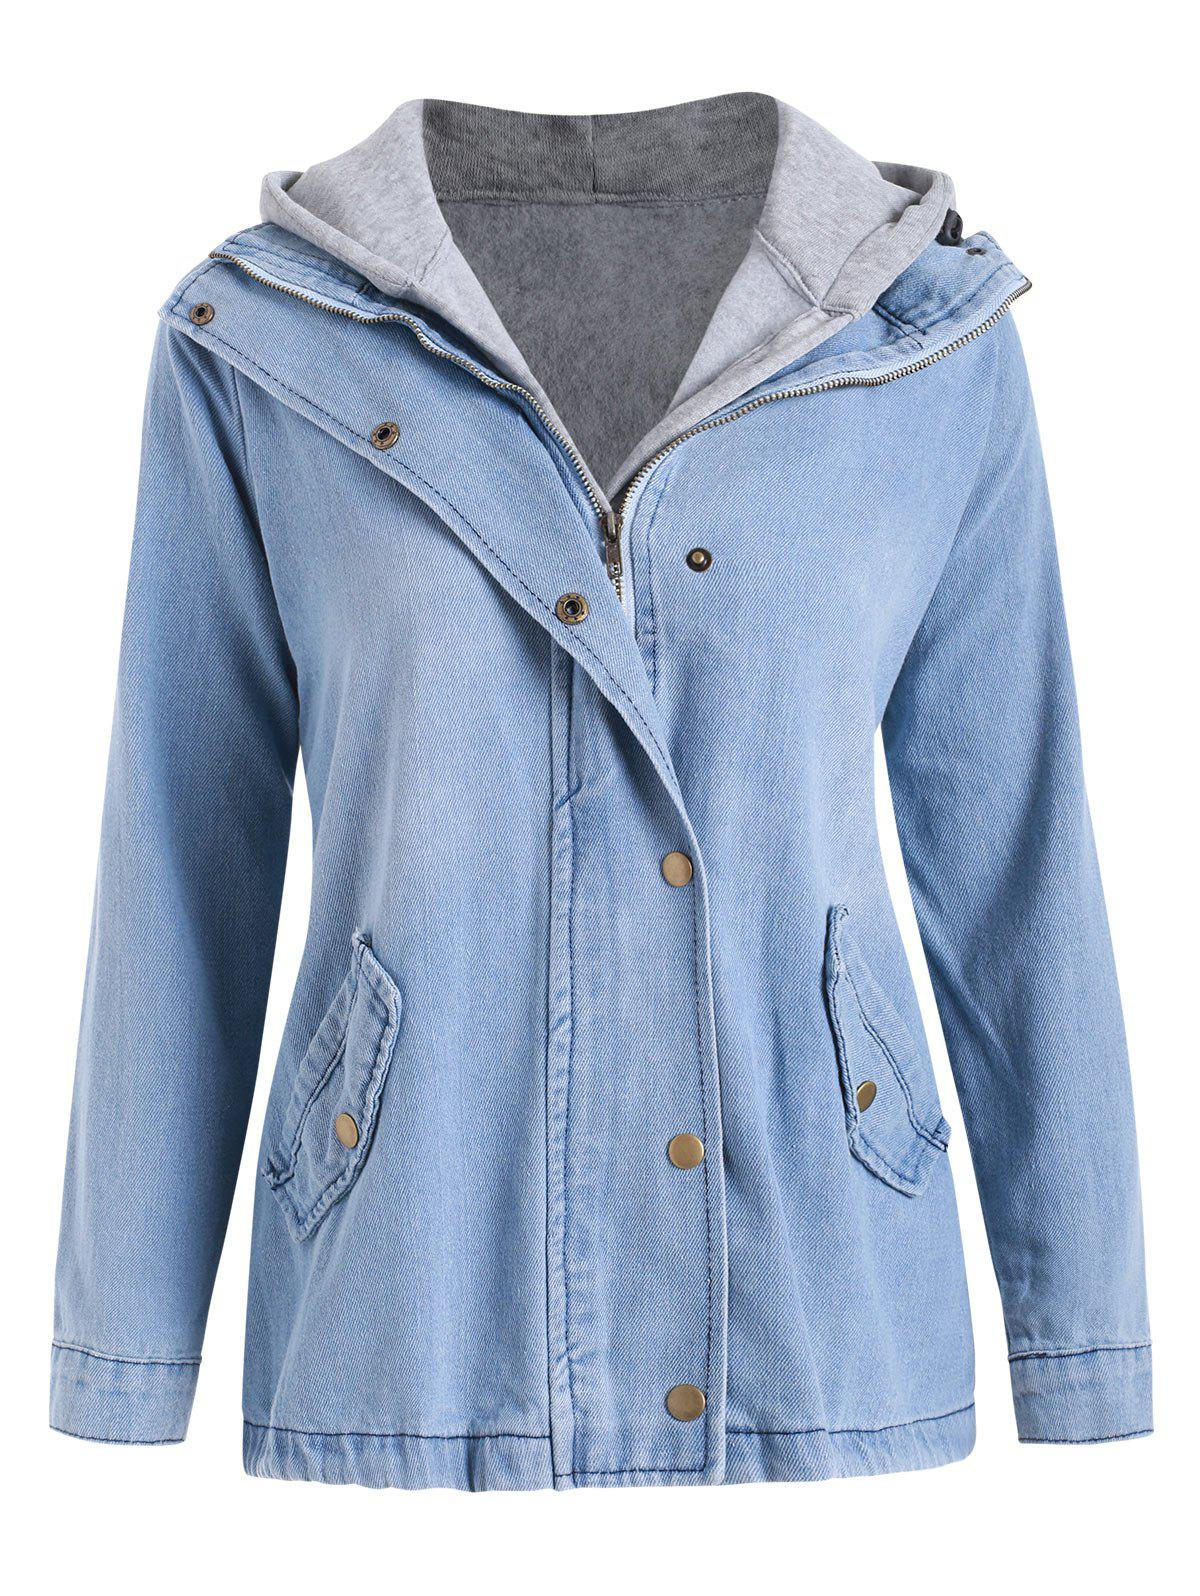 Discount Zip Up Denim Jacket with Hooded Top